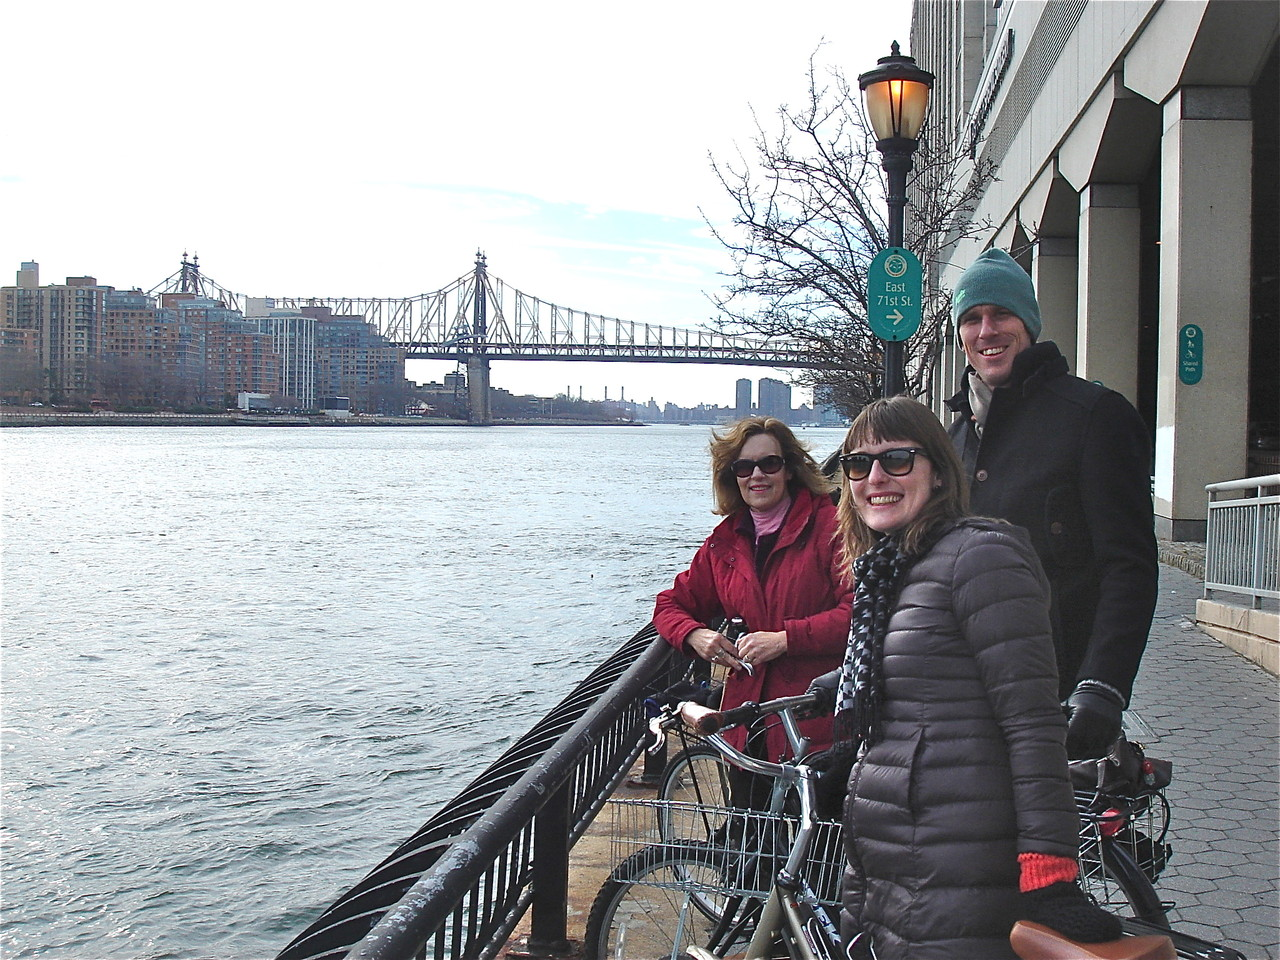 Lorraine, Anna, & Patrick near the 59th St. Bridge, East River, NYC